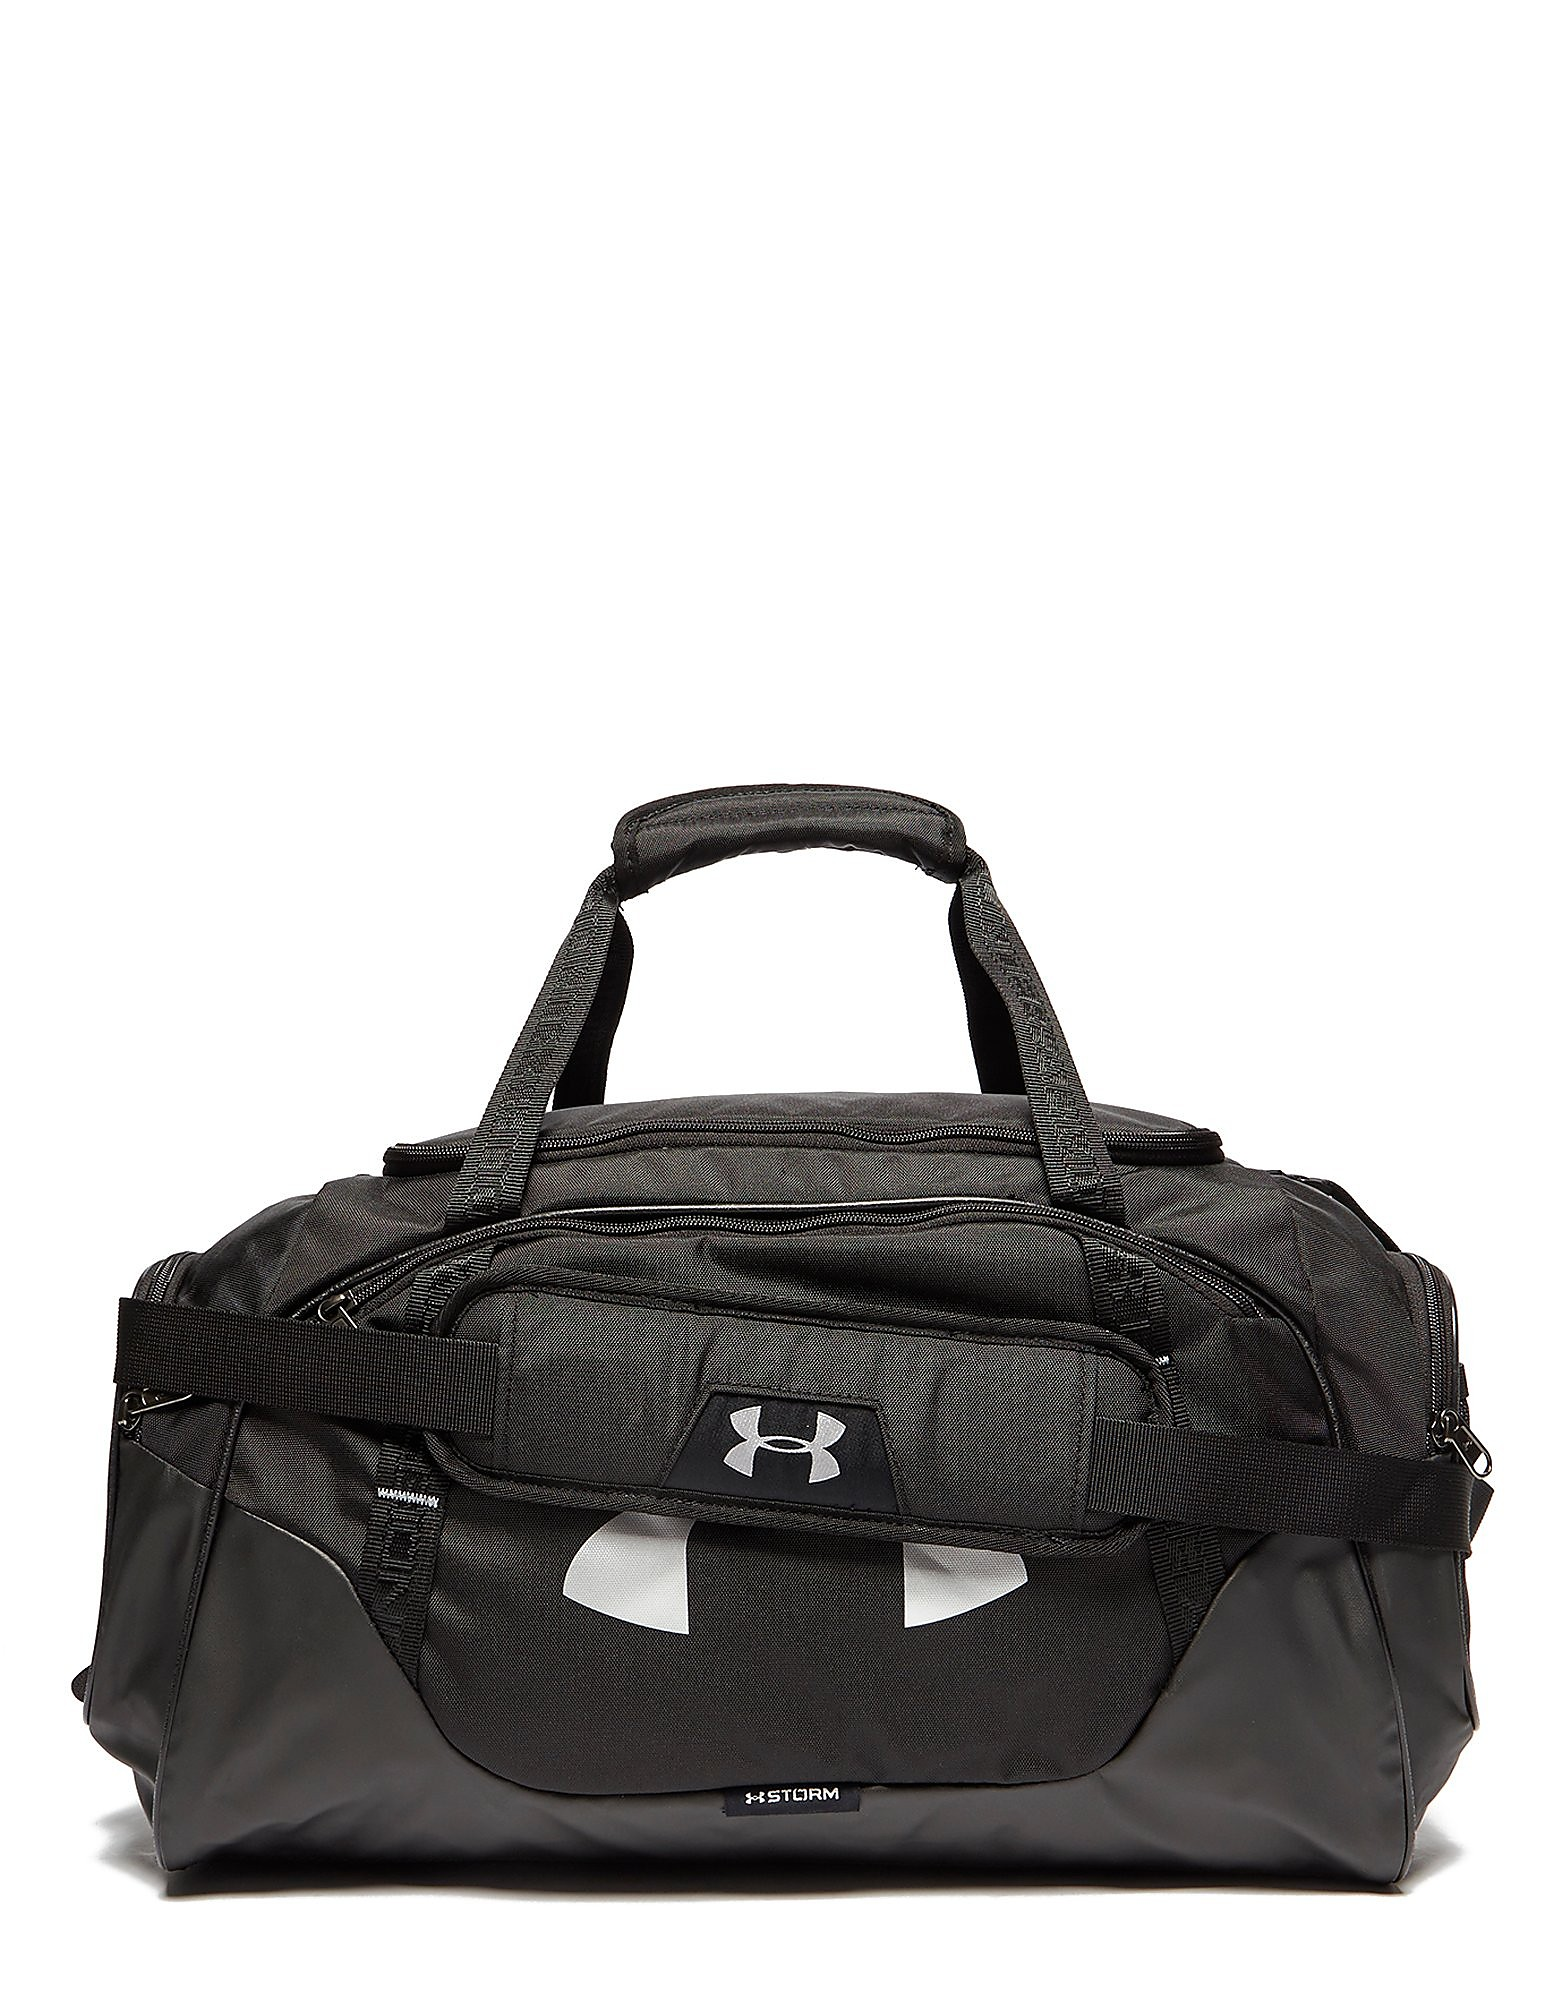 Under Armour Undeniable Small Duffle Bag